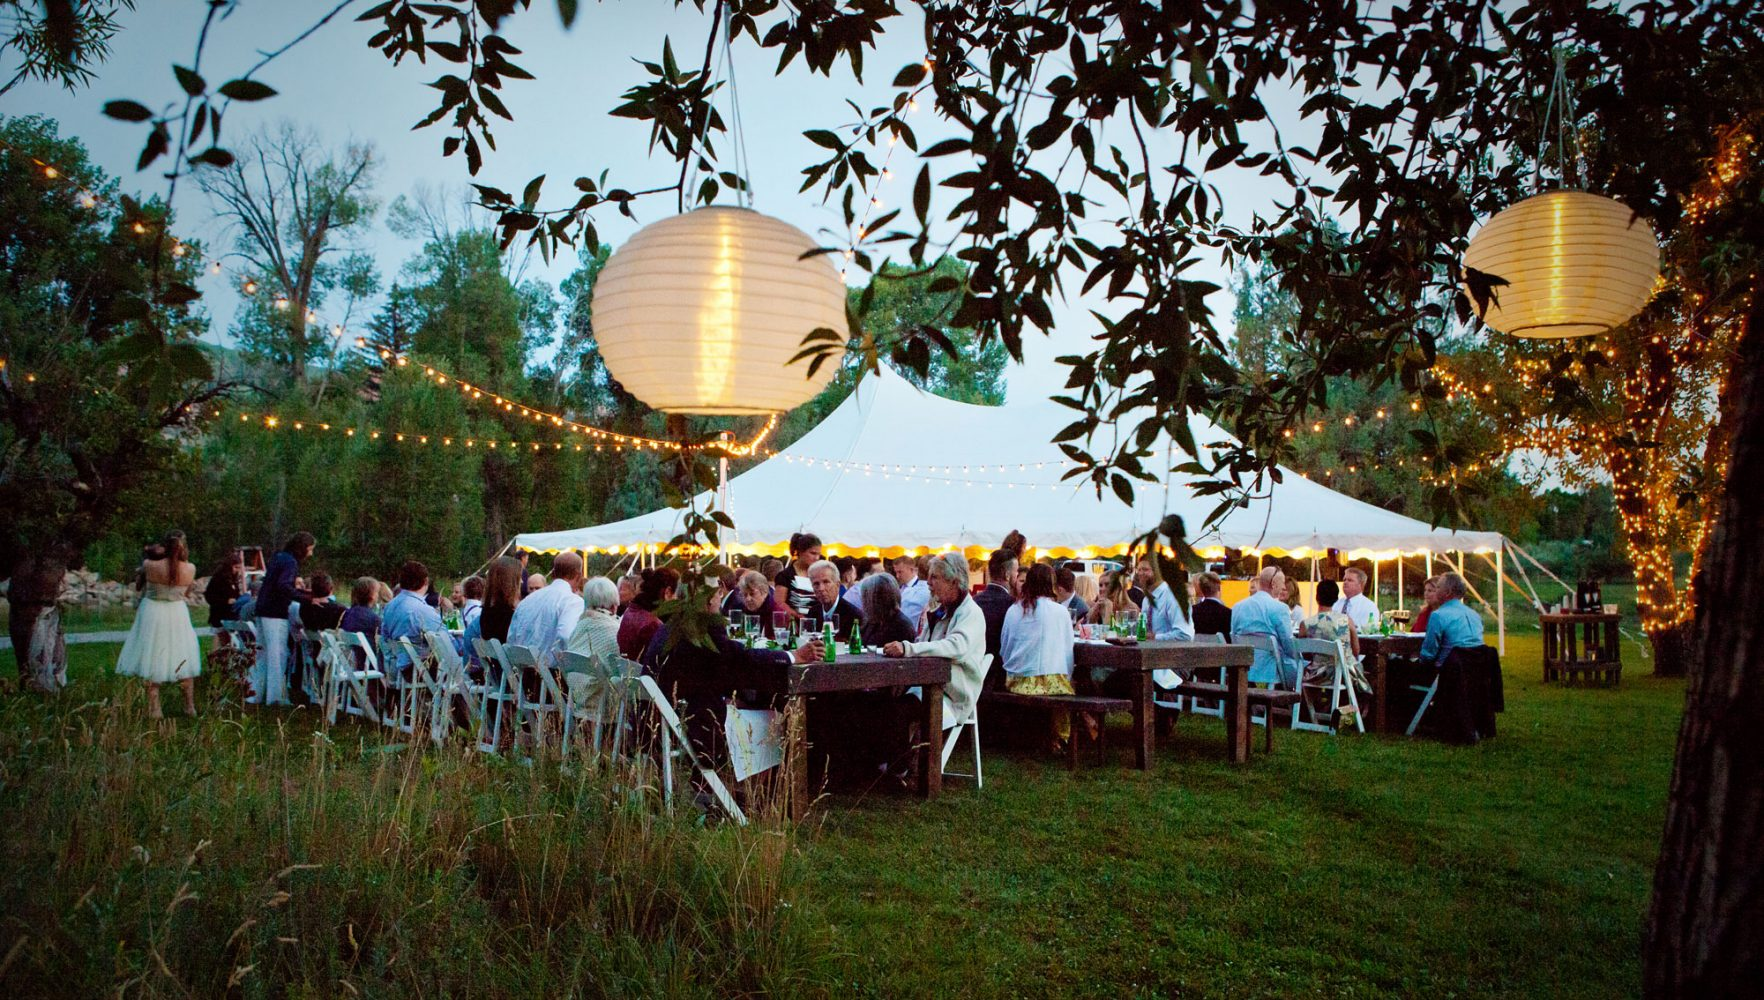 A tent reception fom a backyard wedding on the lawn in the Animas Valley of Durango, Colorado